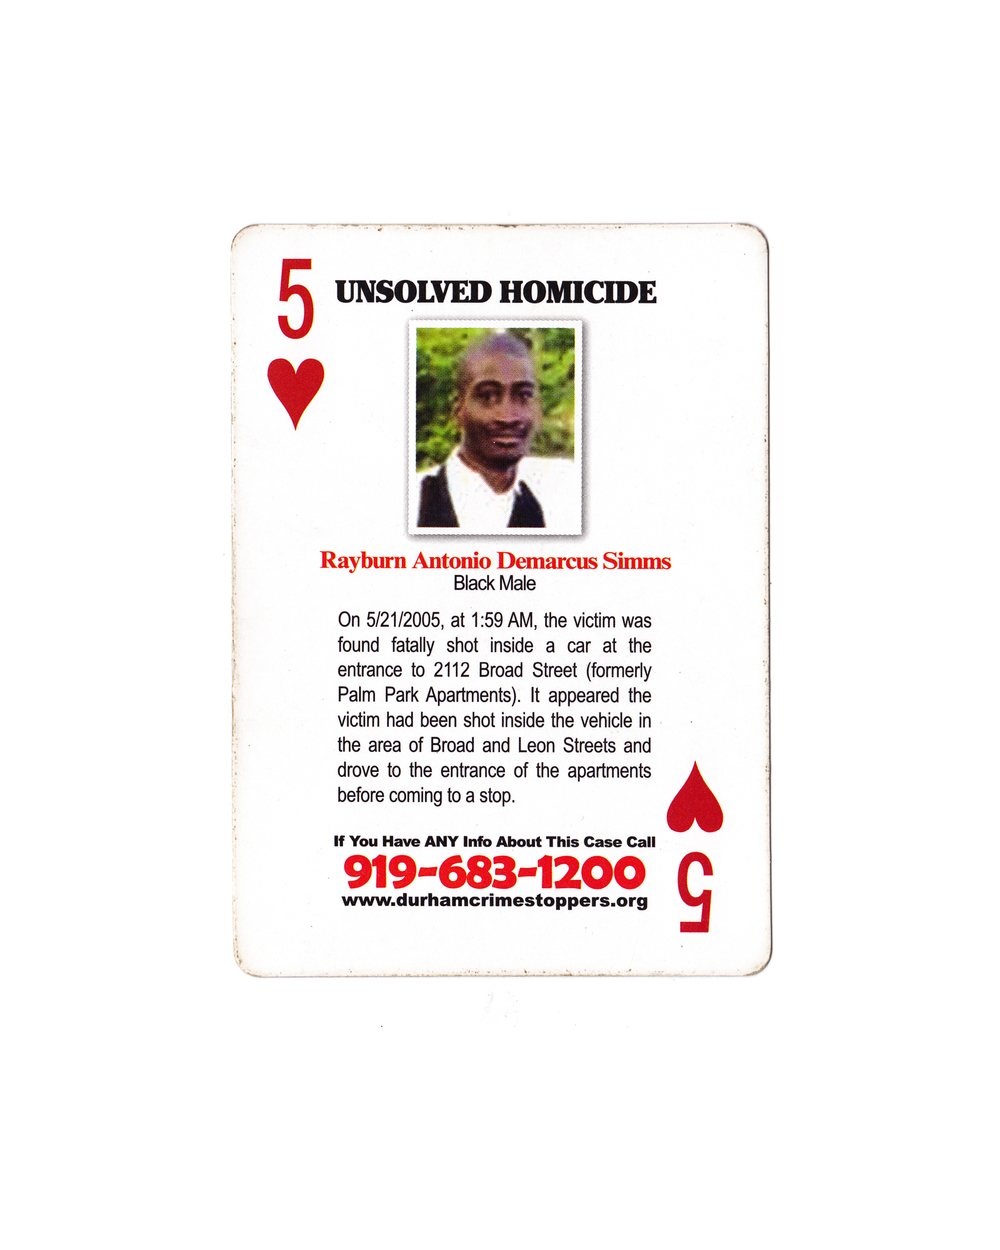 Rayburn Antonio Demarcus Simms is featured among 51 other unsolved Durham homicides in a deck of playing cards designed to generate leads in cold murder cases. According to Durham Police, there are more than 150 unsolved homicides in Durham stretching back to the 1990s. Distrust of the police and fear of retaliation for snitching discourages many African-American witnesses from coming forward, and prevents murders from being solved.